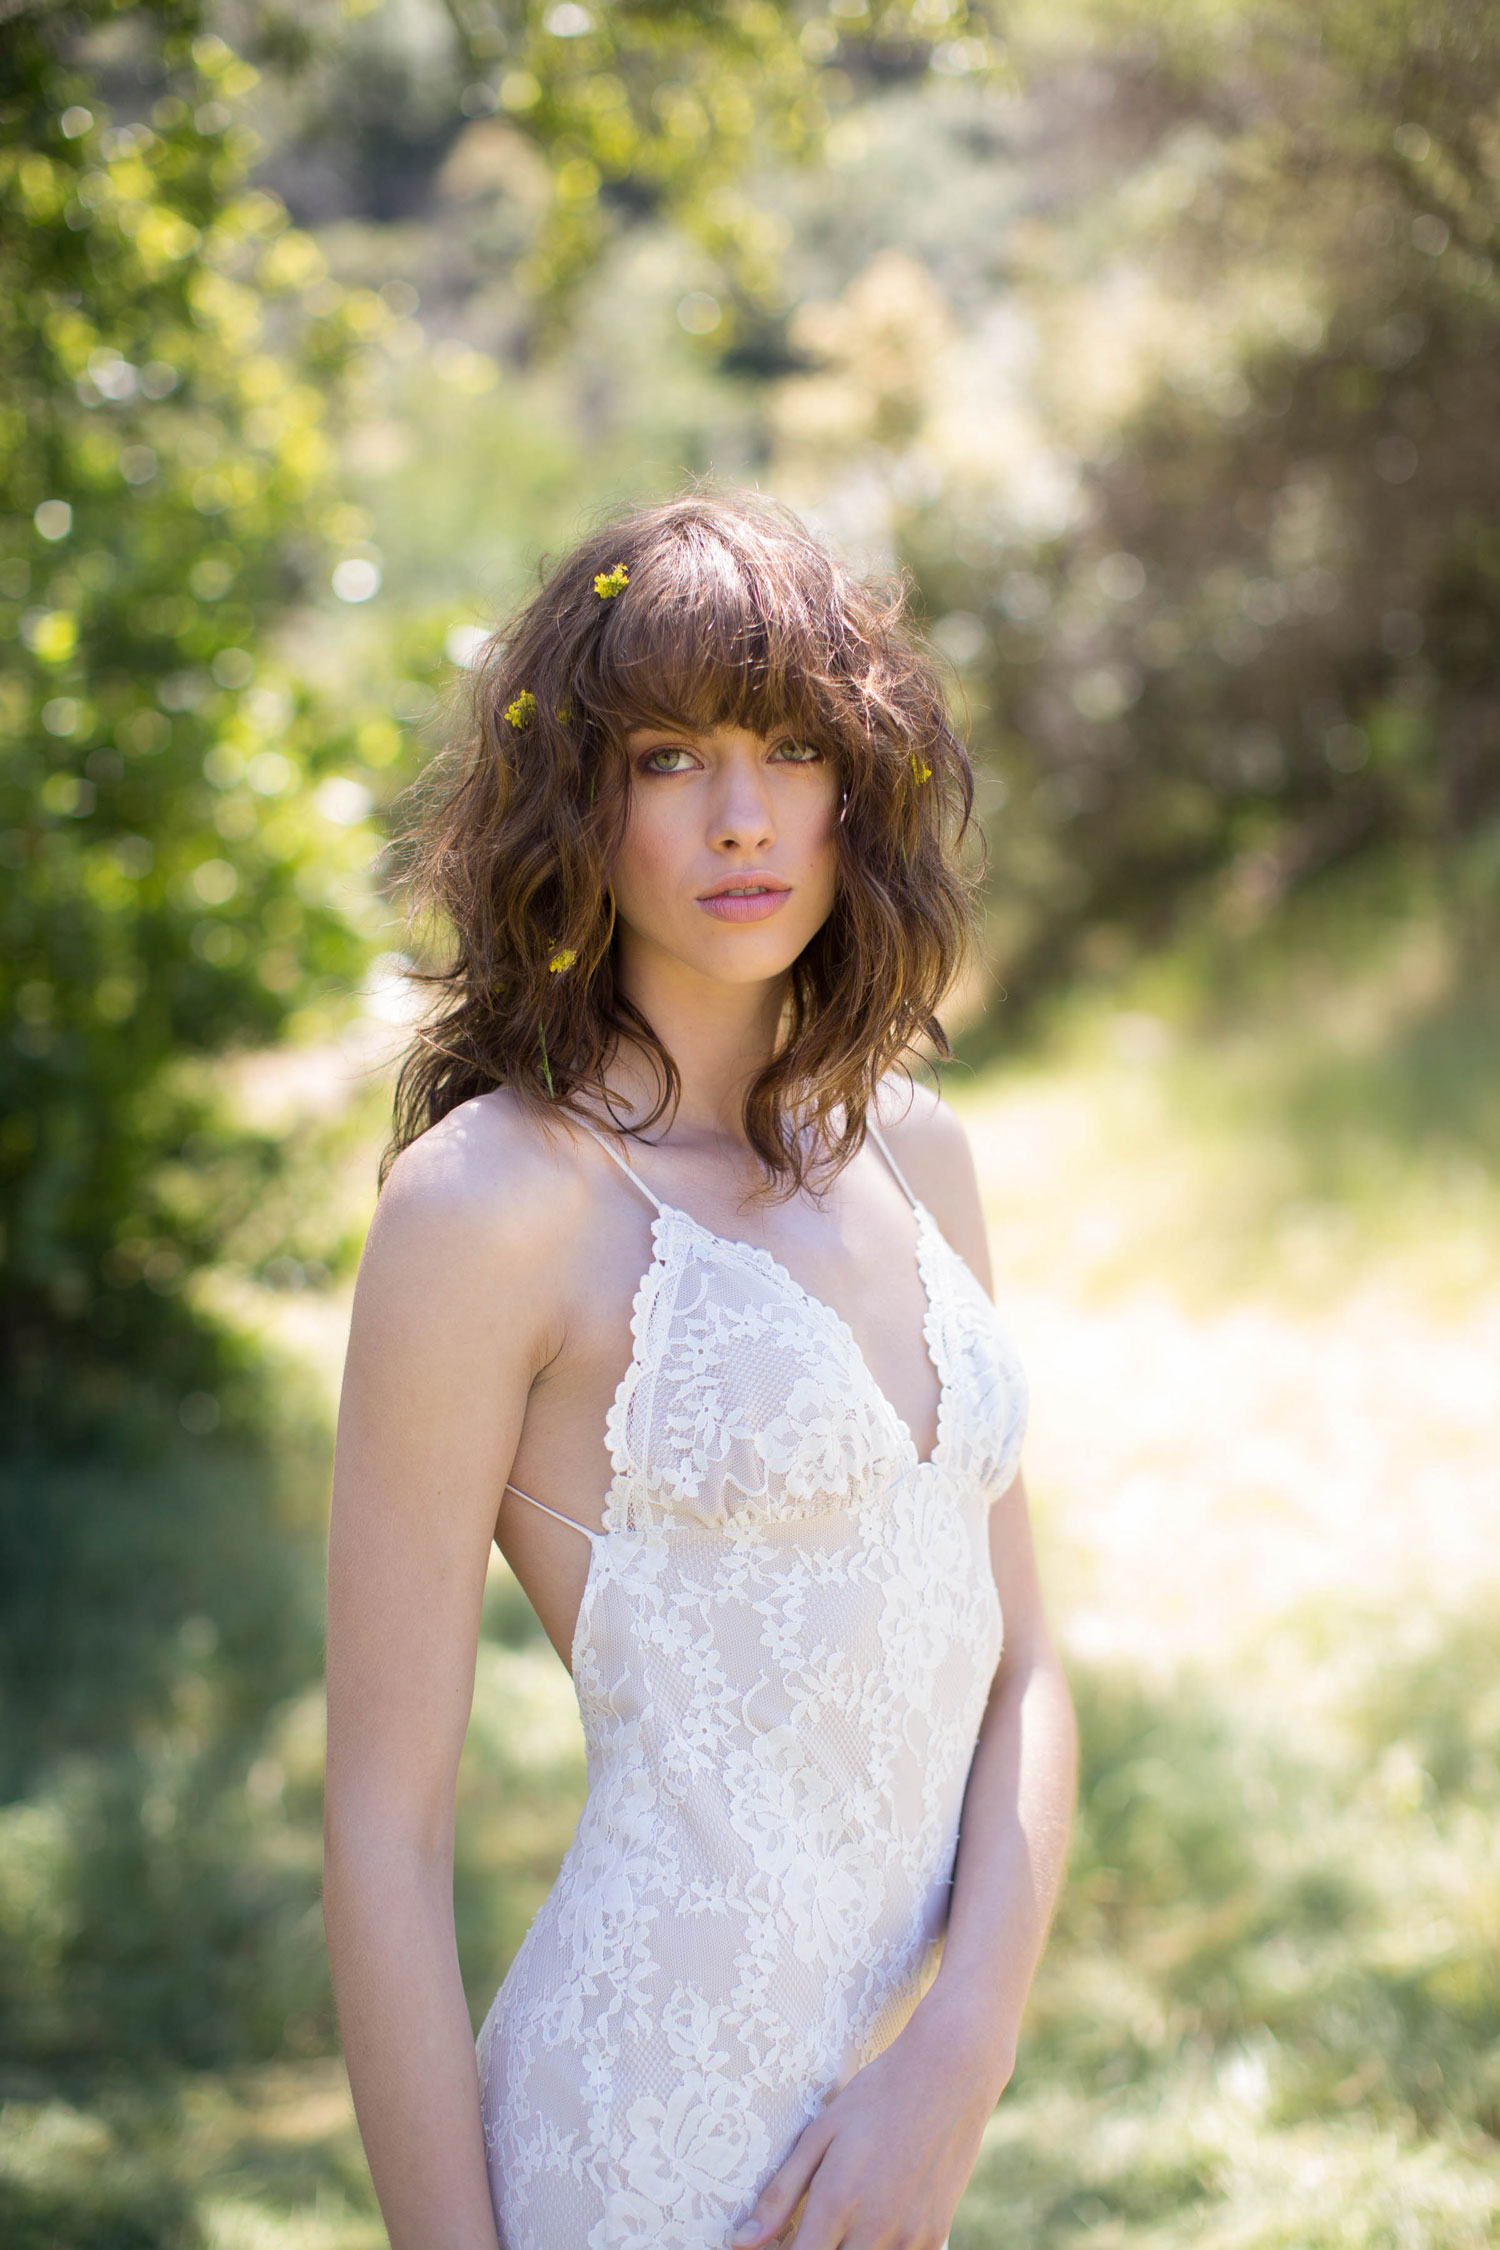 Claire Pettibone Romantique stylized shoot in Malibu California Dreamin' collection Marina wedding dress